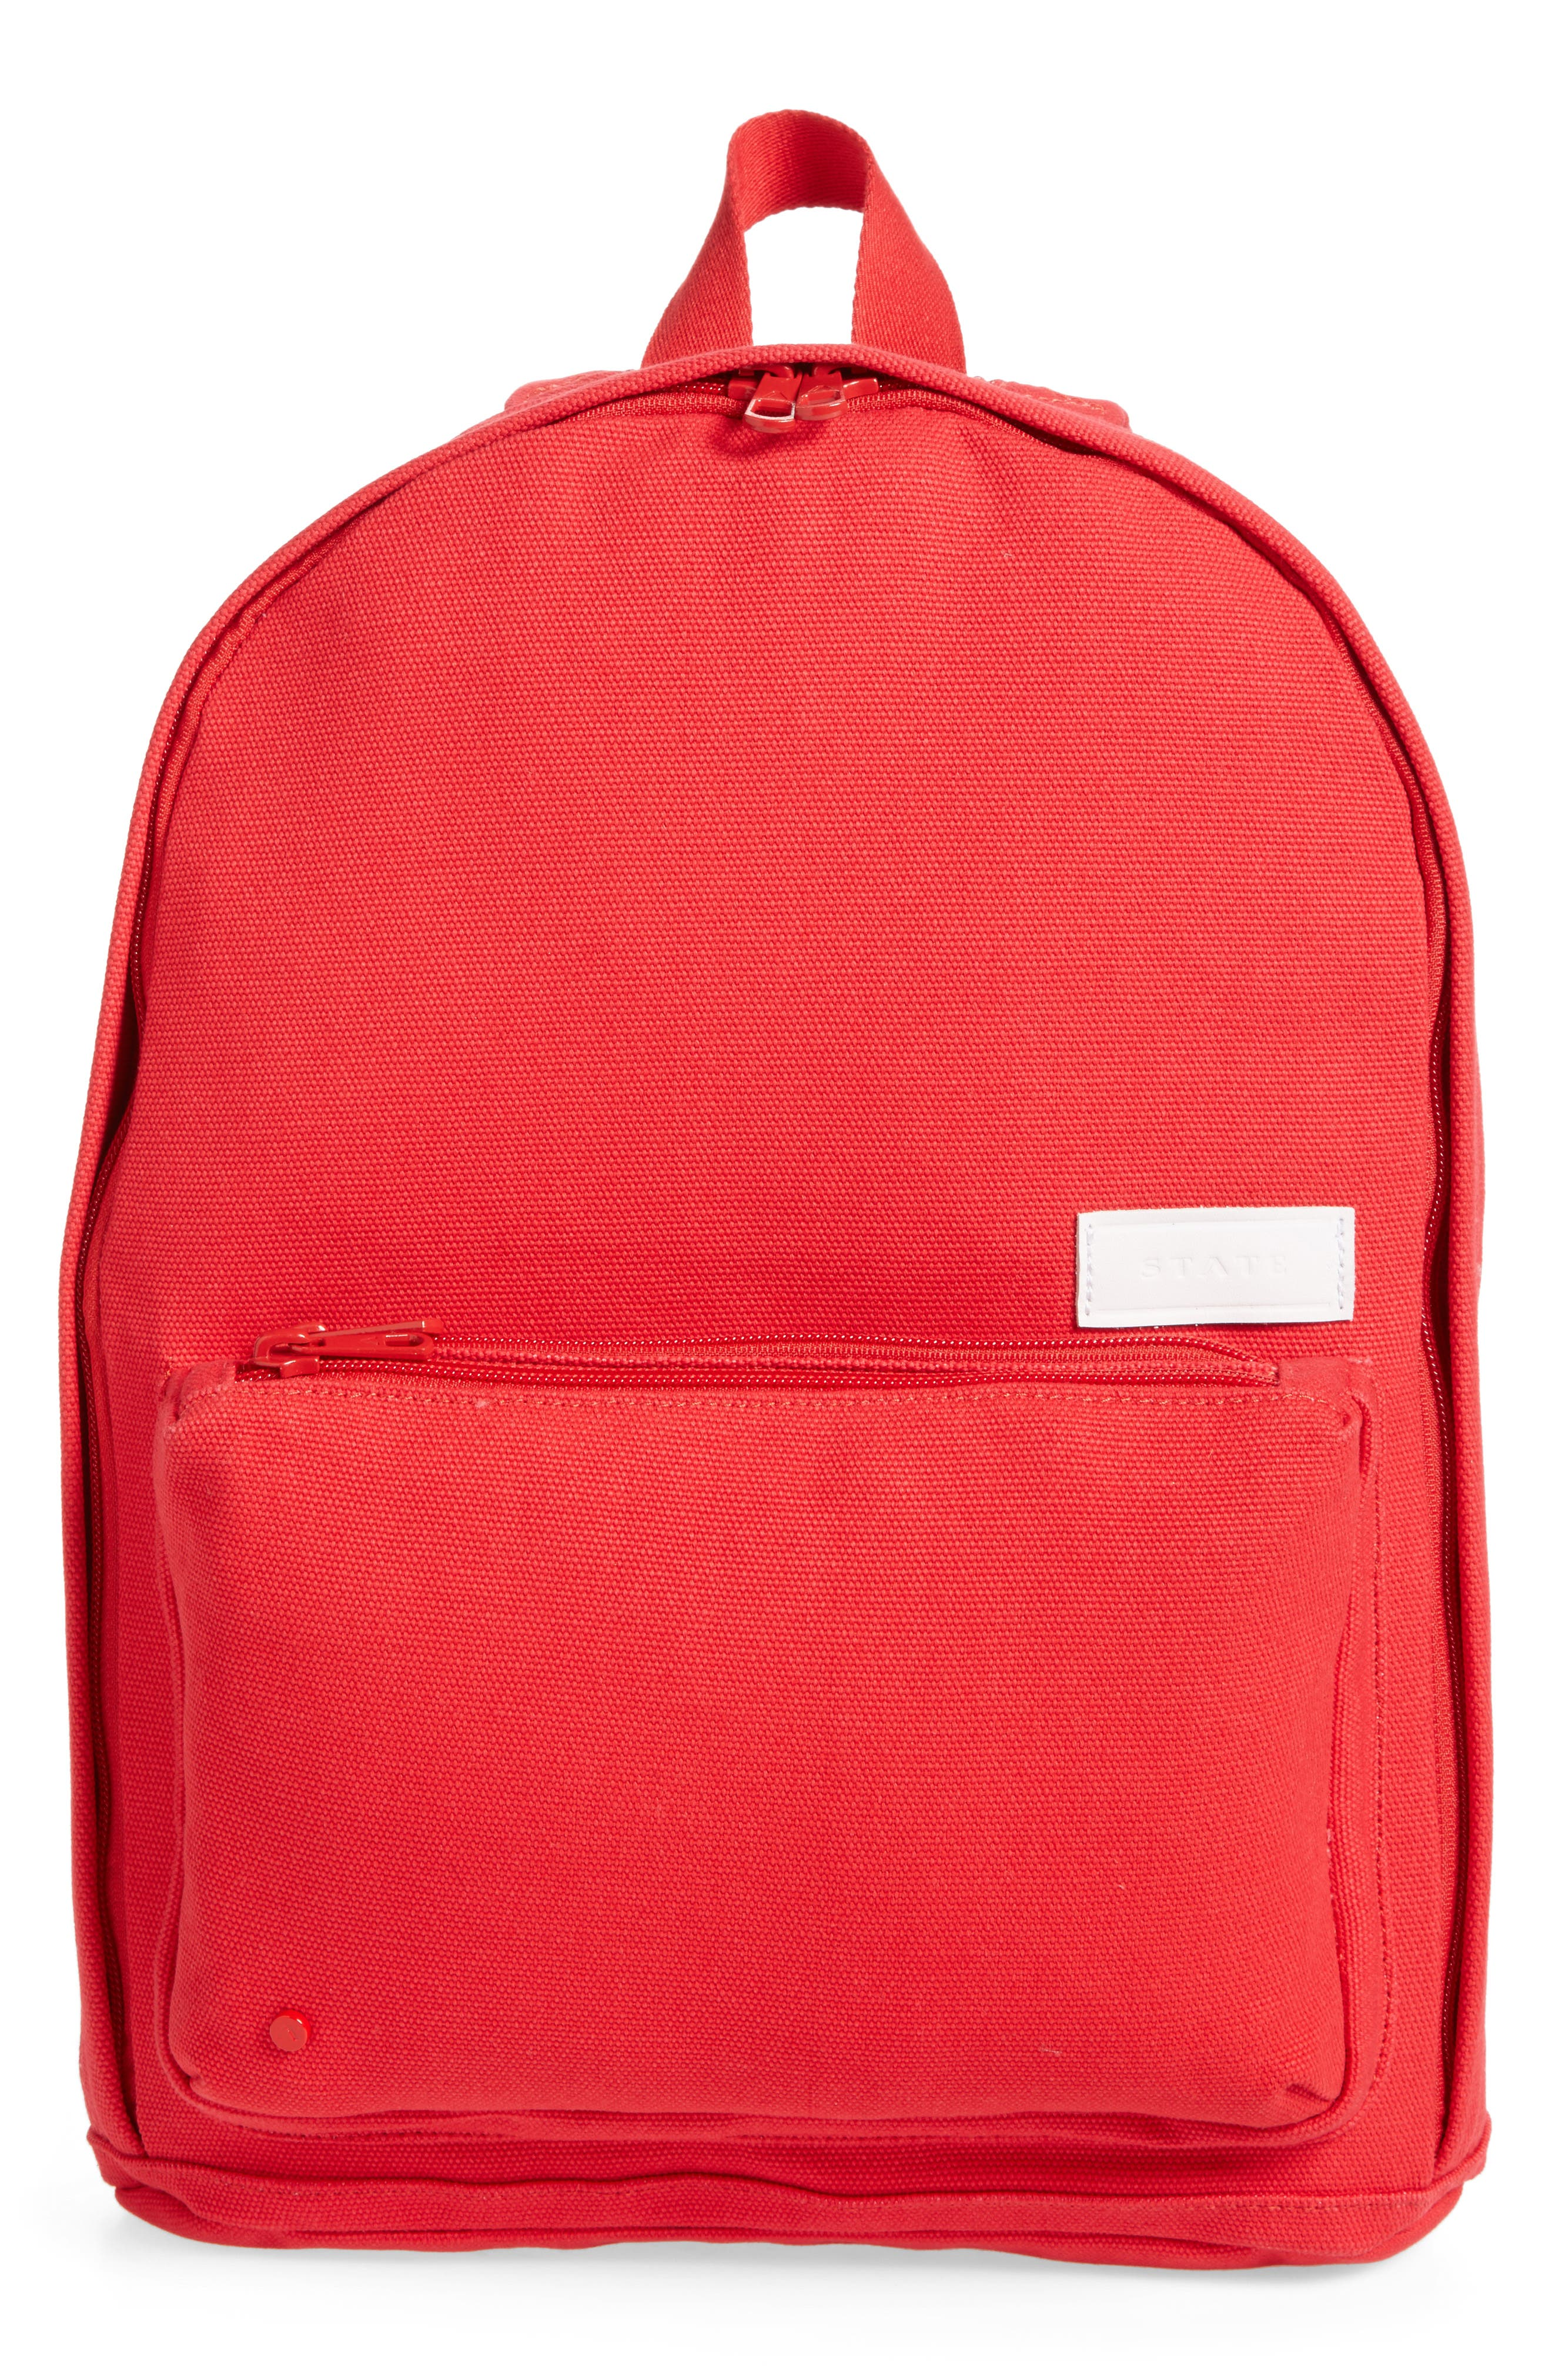 Slim Lorimer Water Resistant Canvas Backpack,                         Main,                         color, Red